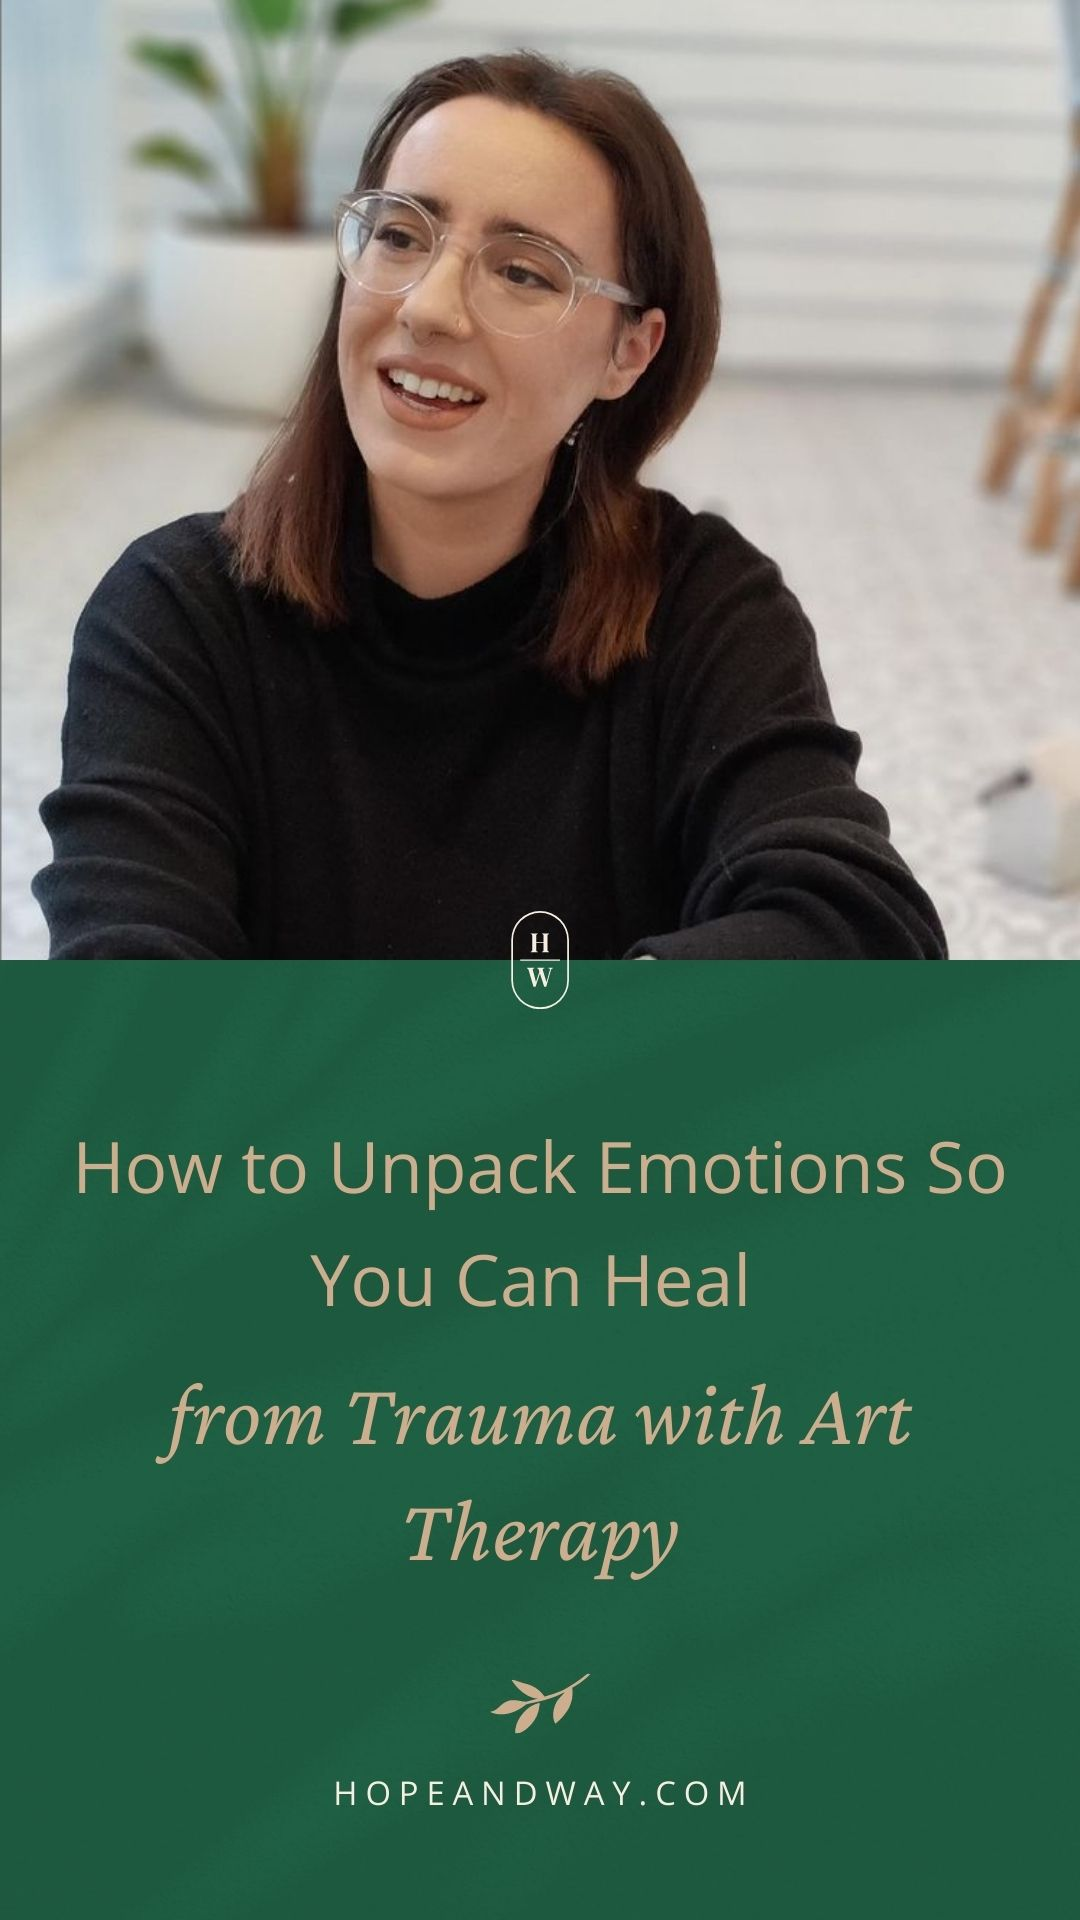 How to Unpack Emotions So You Can Heal from Trauma with Art Therapy – Interview with Jessica Pietrasanta